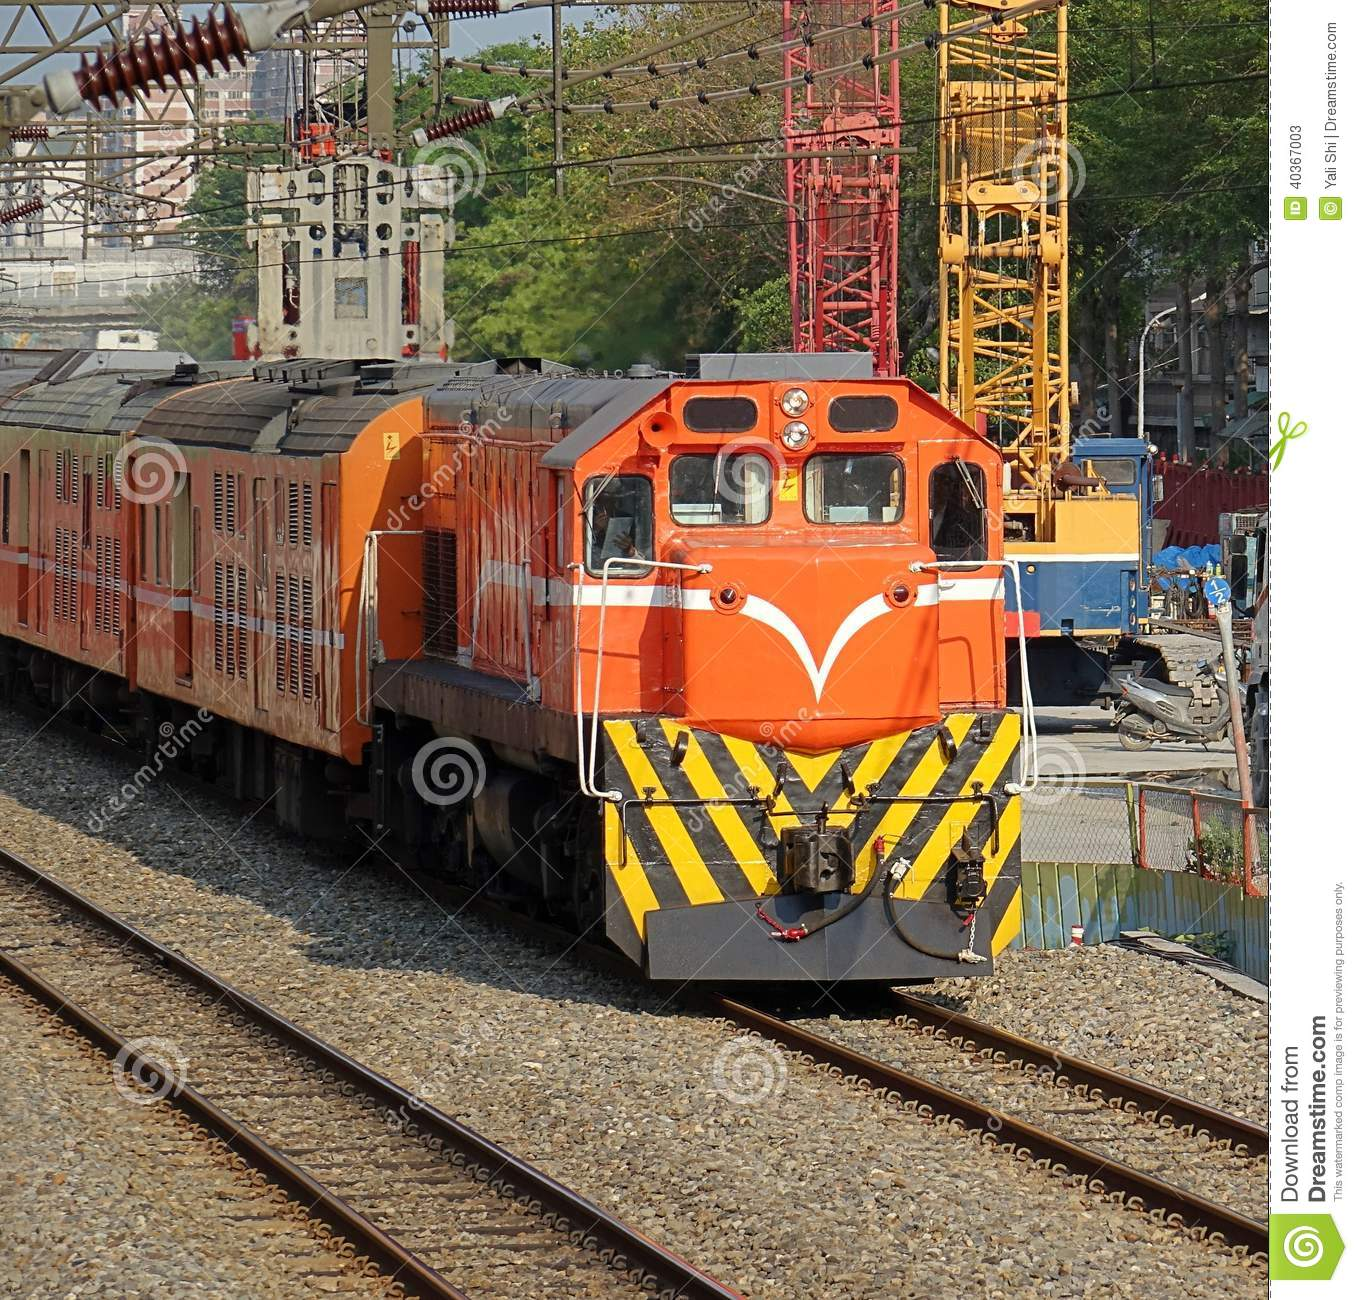 Diesel Train Passes Construction Site Stock Image - Image of cabin